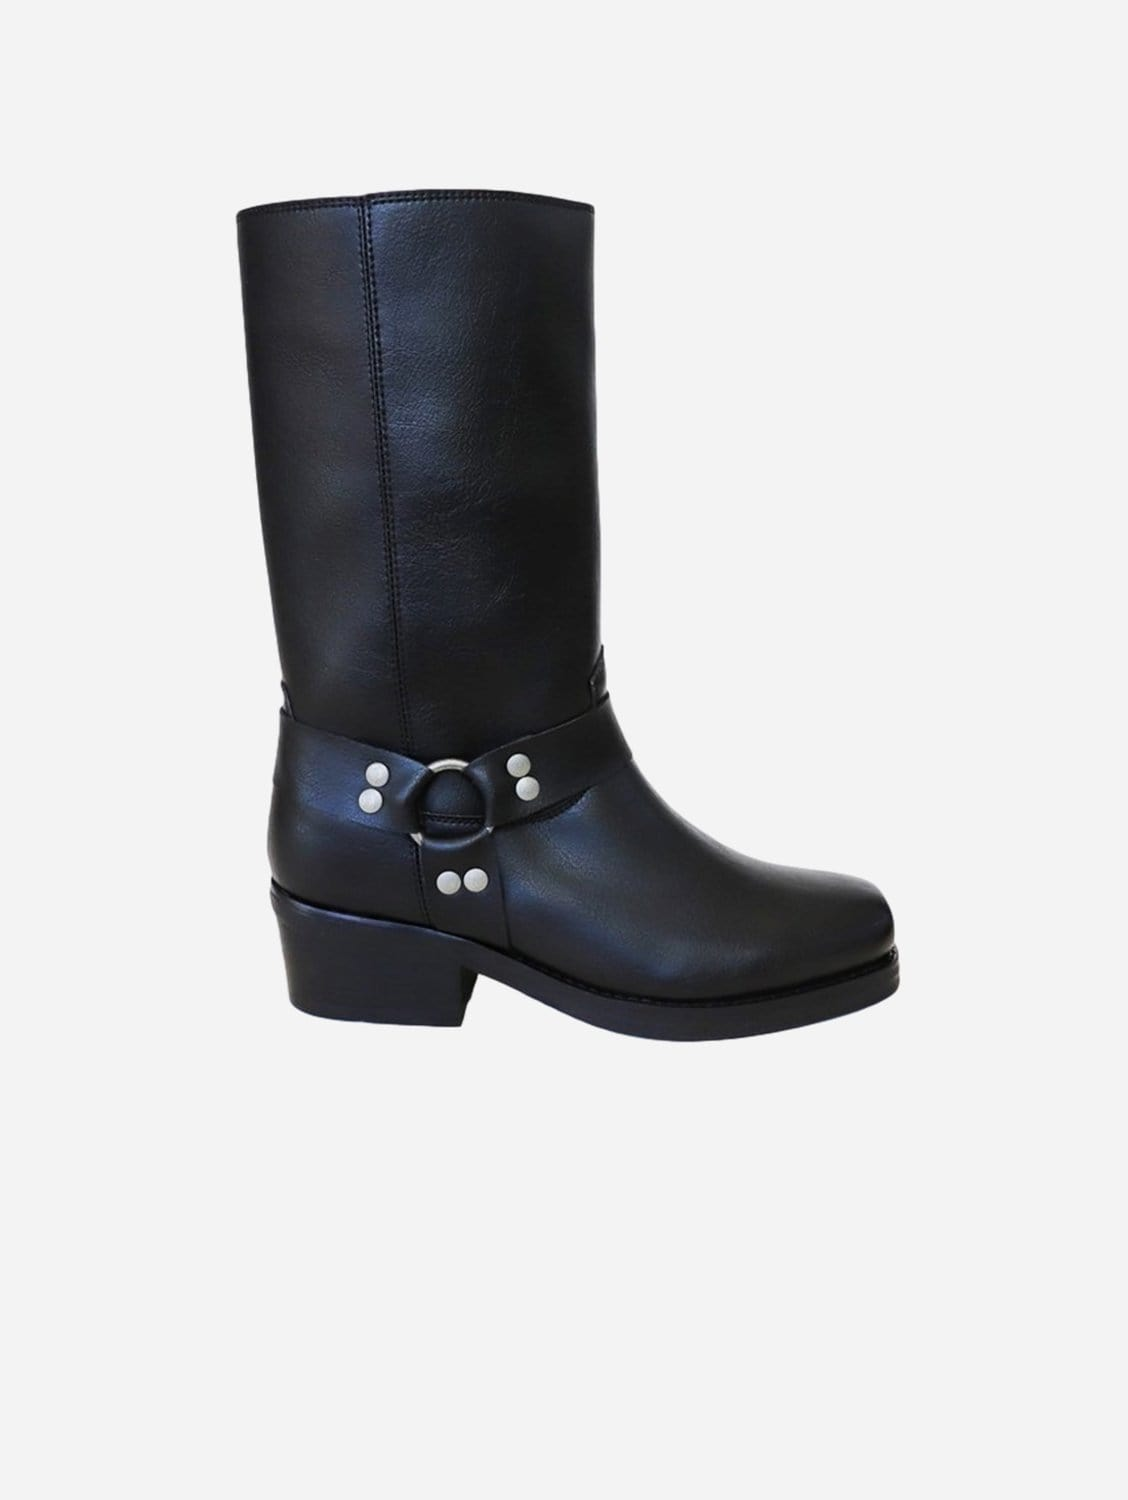 Harry Vegan Leather Harness Motorcycle Boots | Black